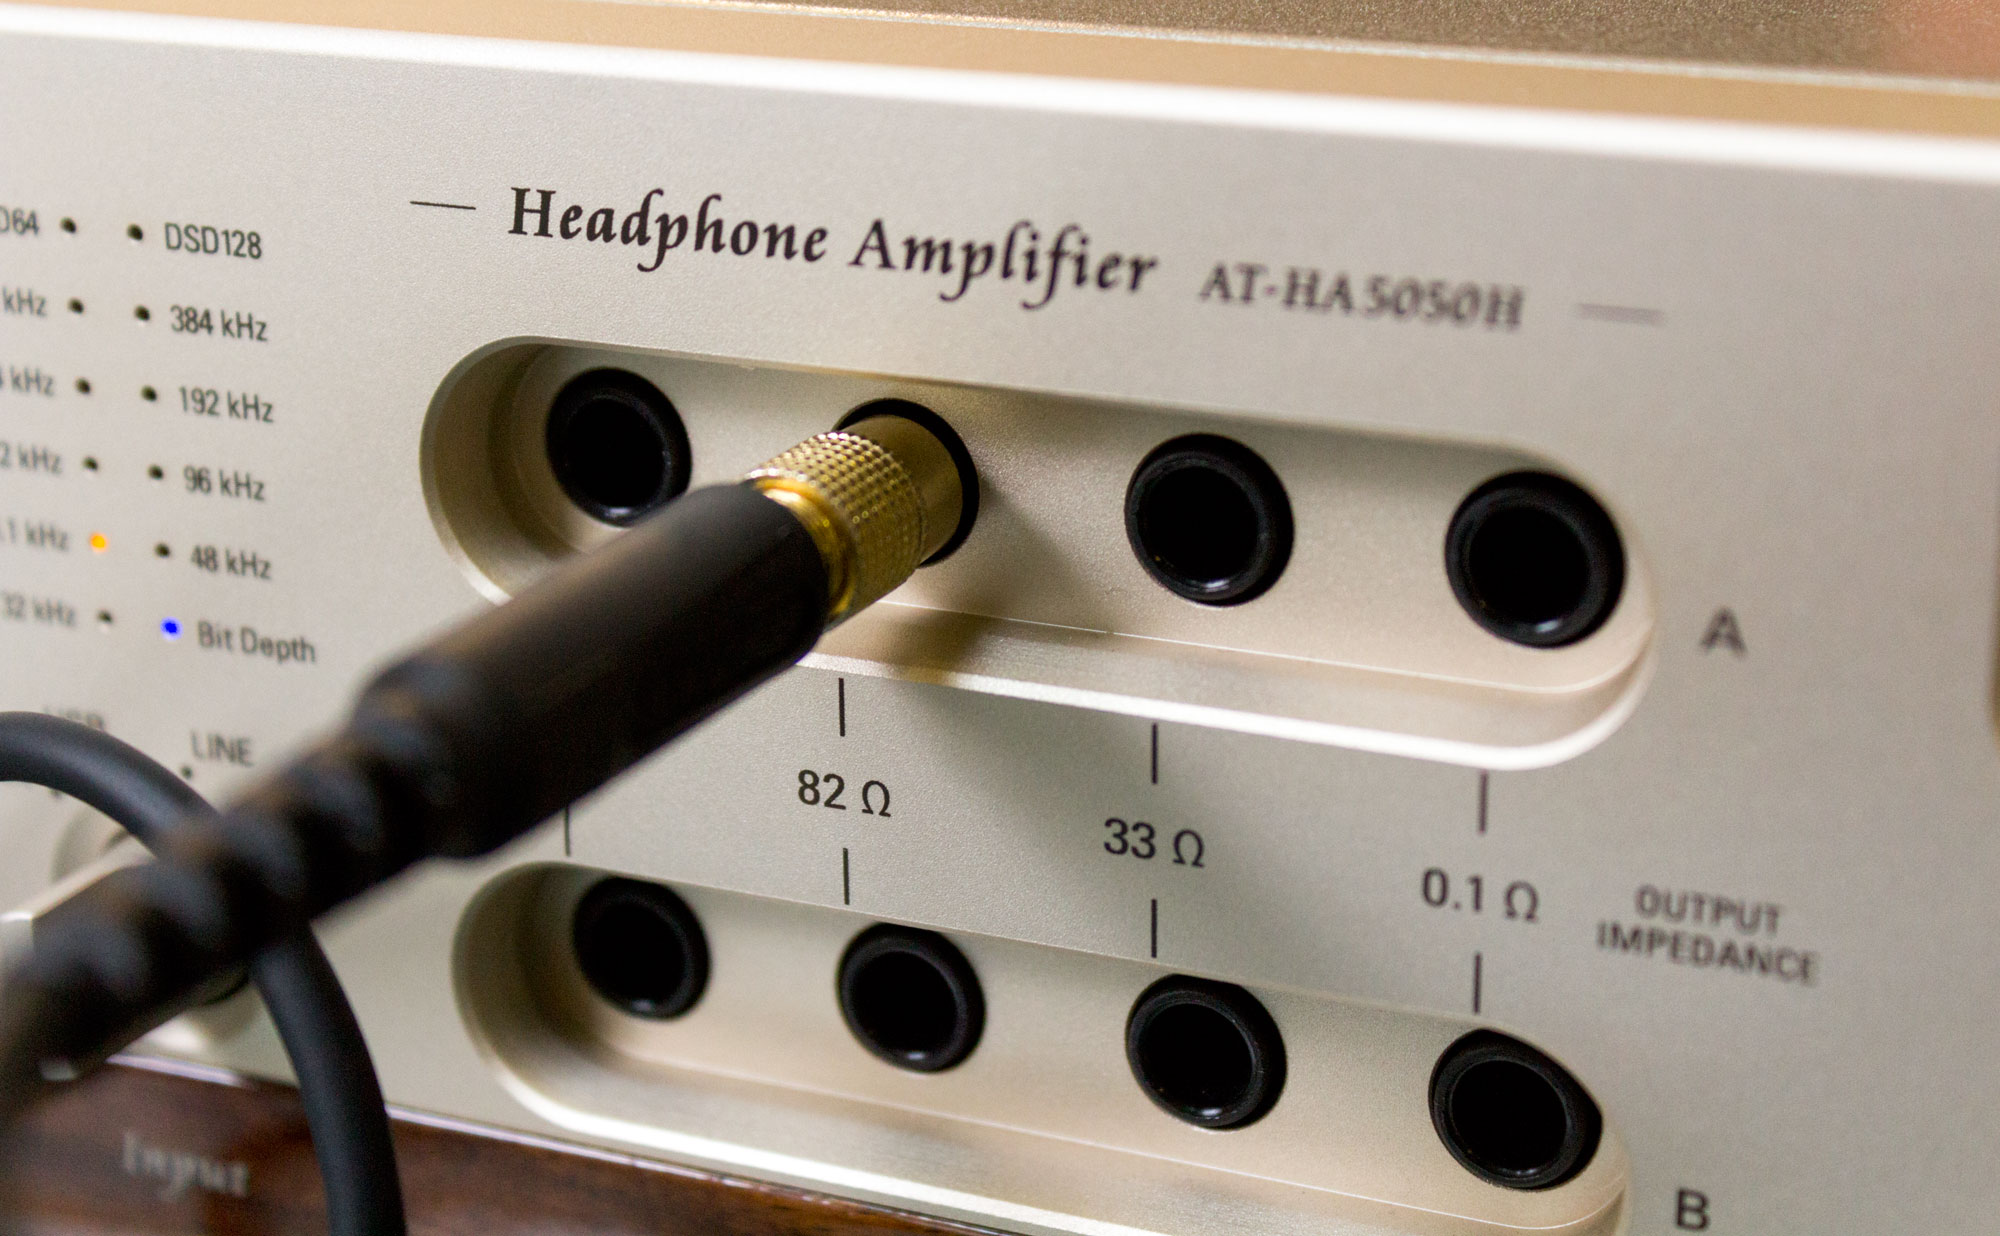 Review Of The Audio Technica At Ha5050h Son Vidocom Blog Headphone Jacks On Front Panel Amplifier Circuit Aside From Input Selector And Volume Potentiometer Features An Stream Resolution Indicator Ranging 32 To 384 Khz In Addition